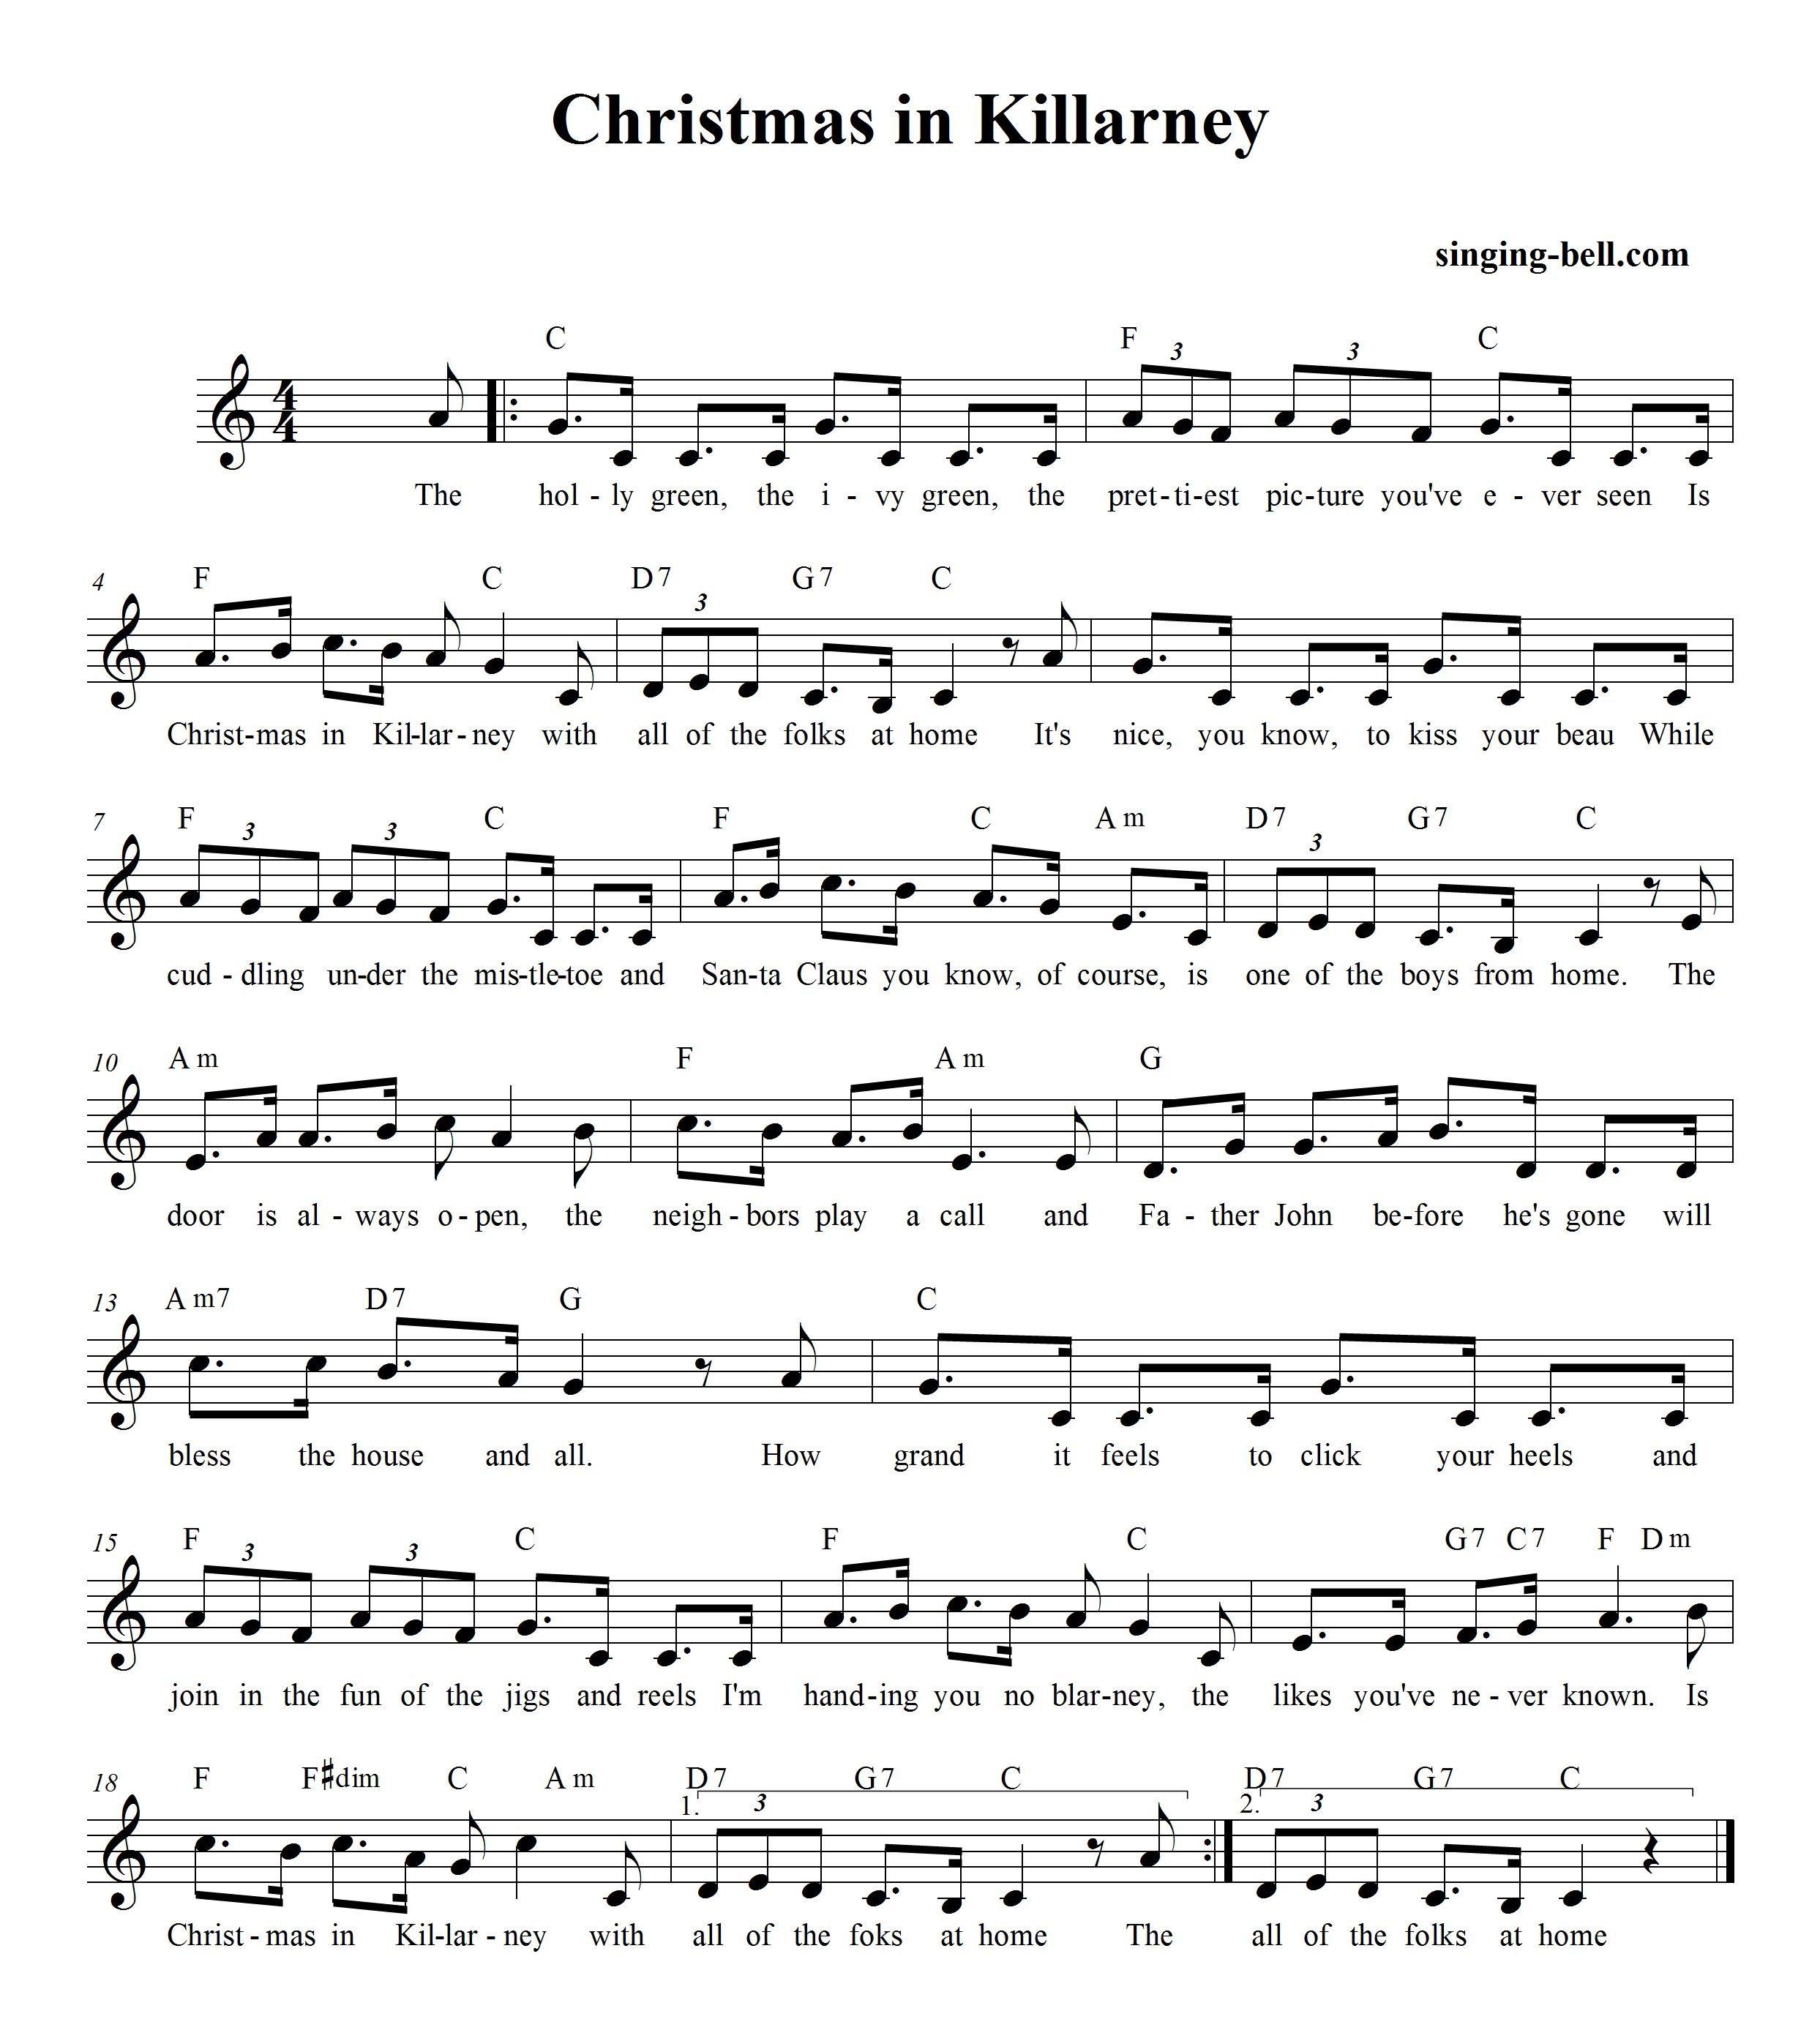 Christmas in Killarney_singing-bell